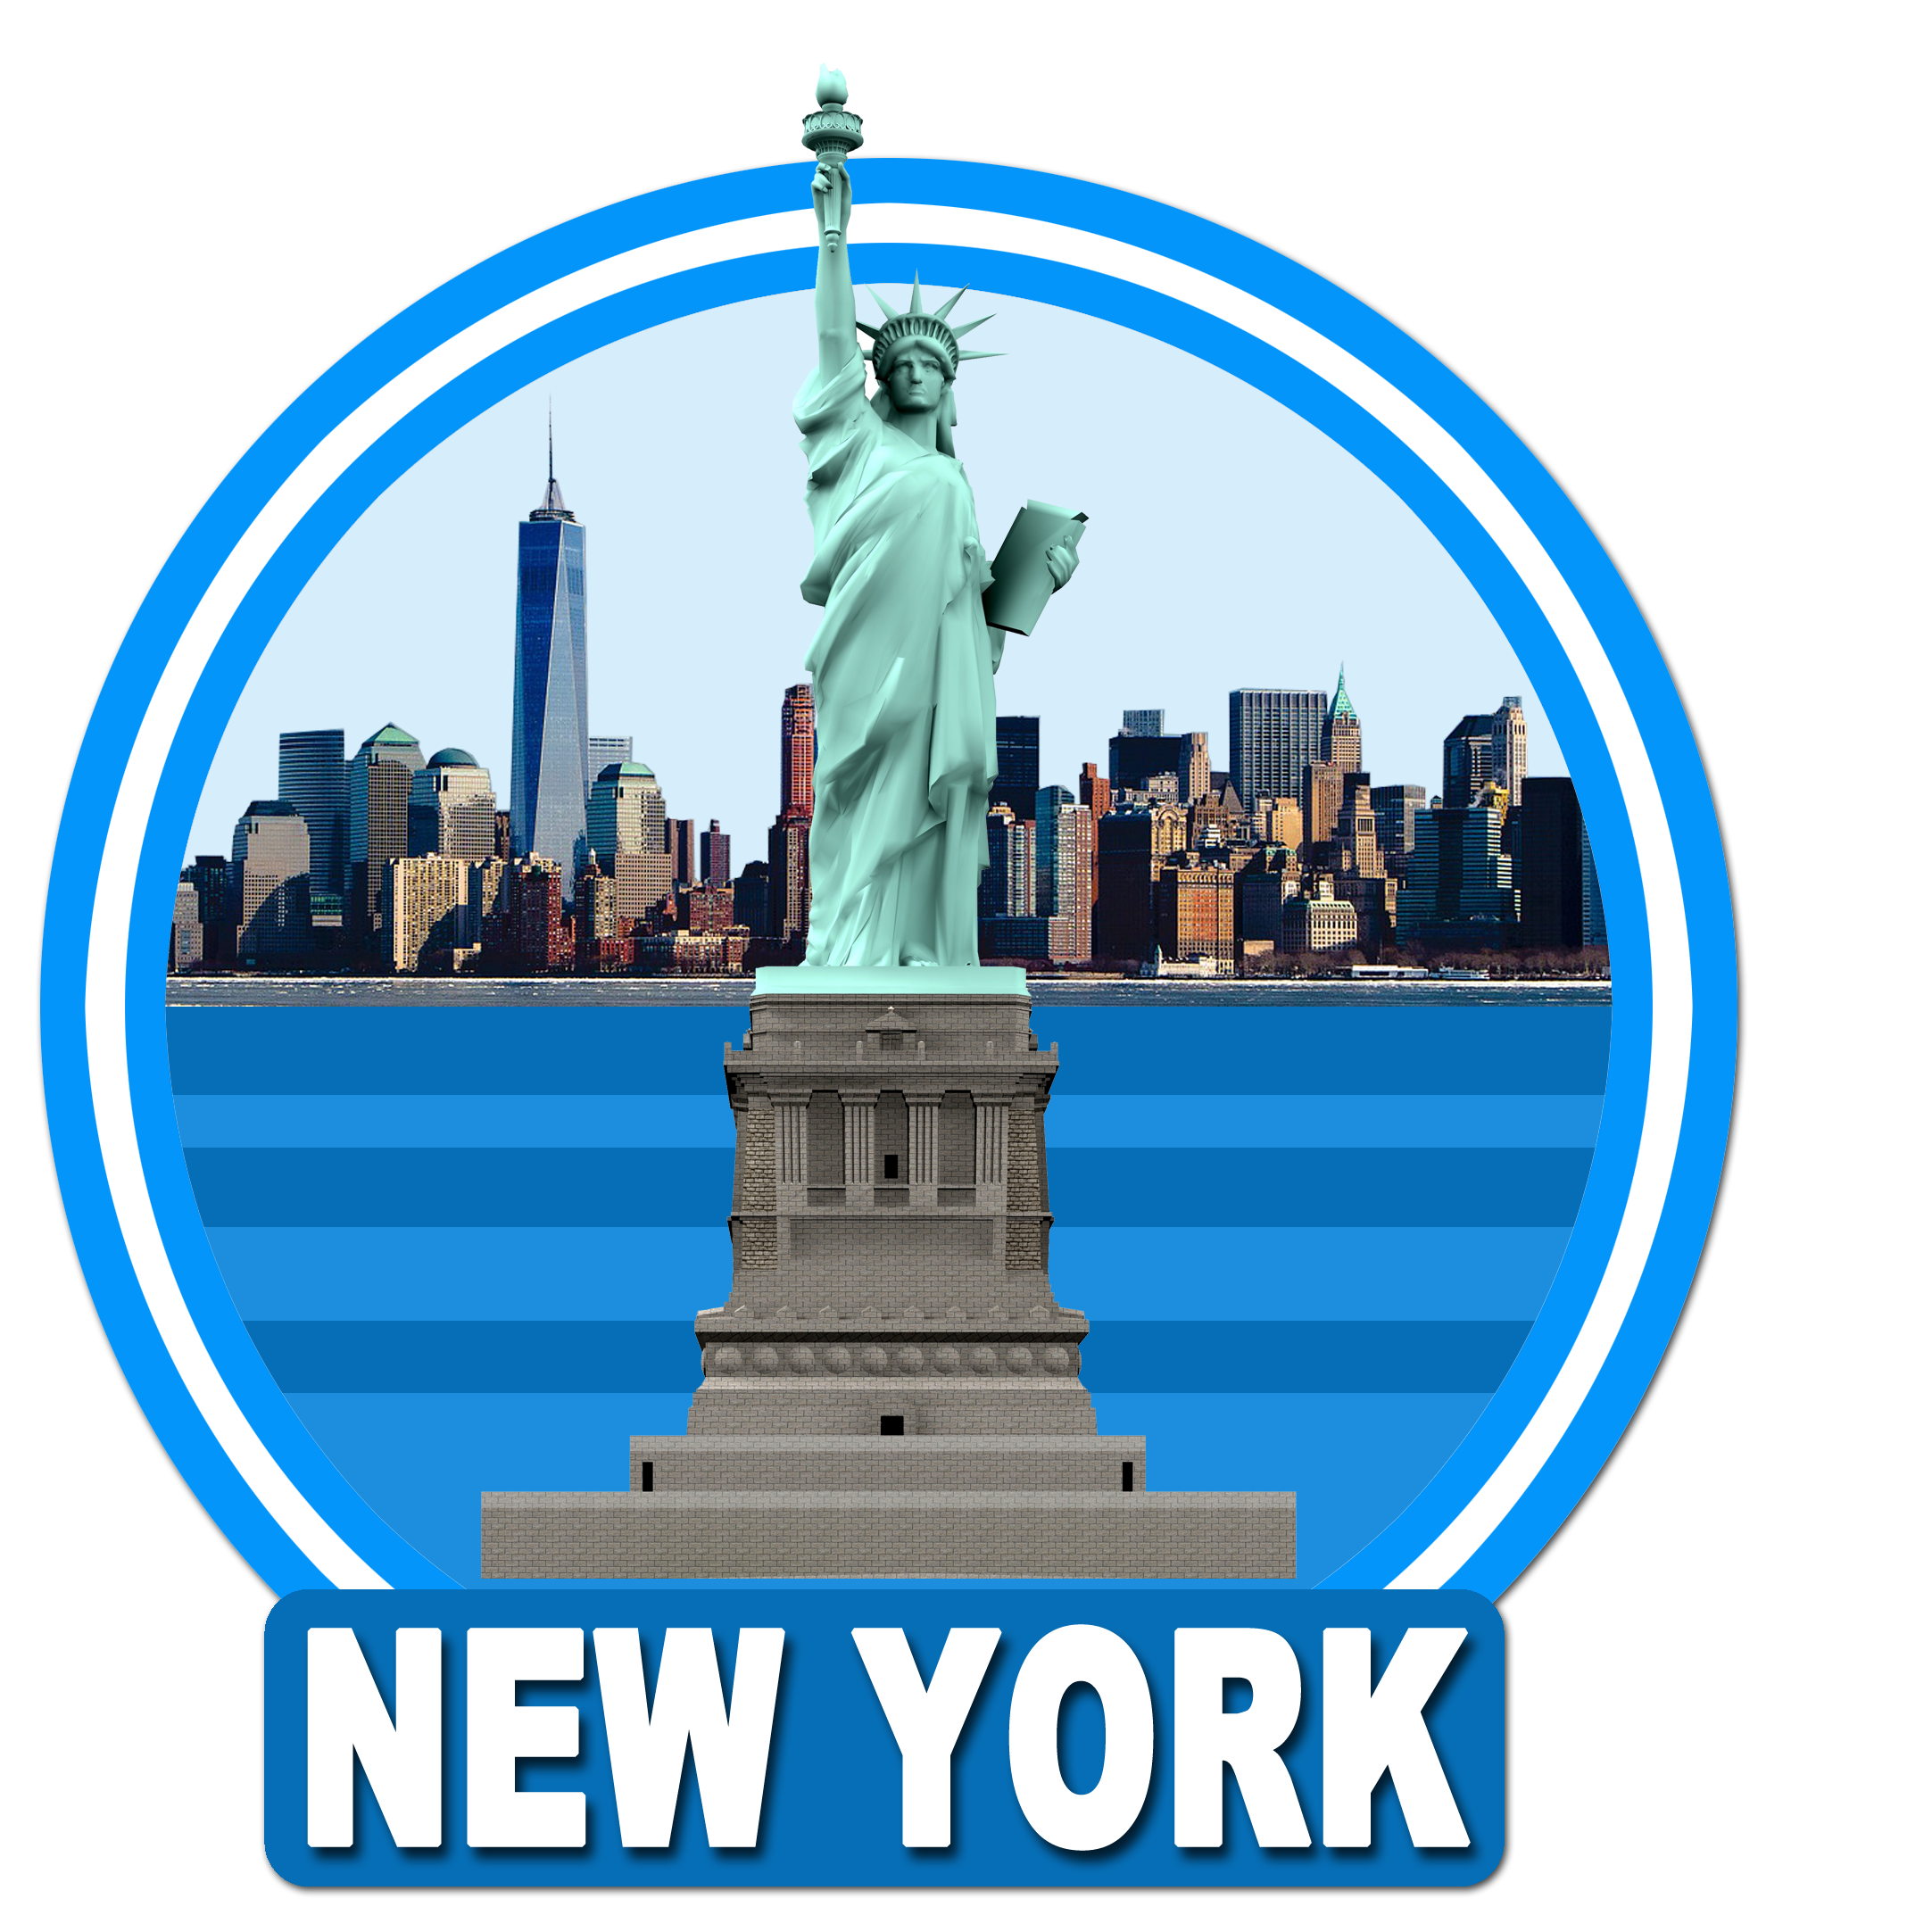 Statue of Liberty in New York PNG Image